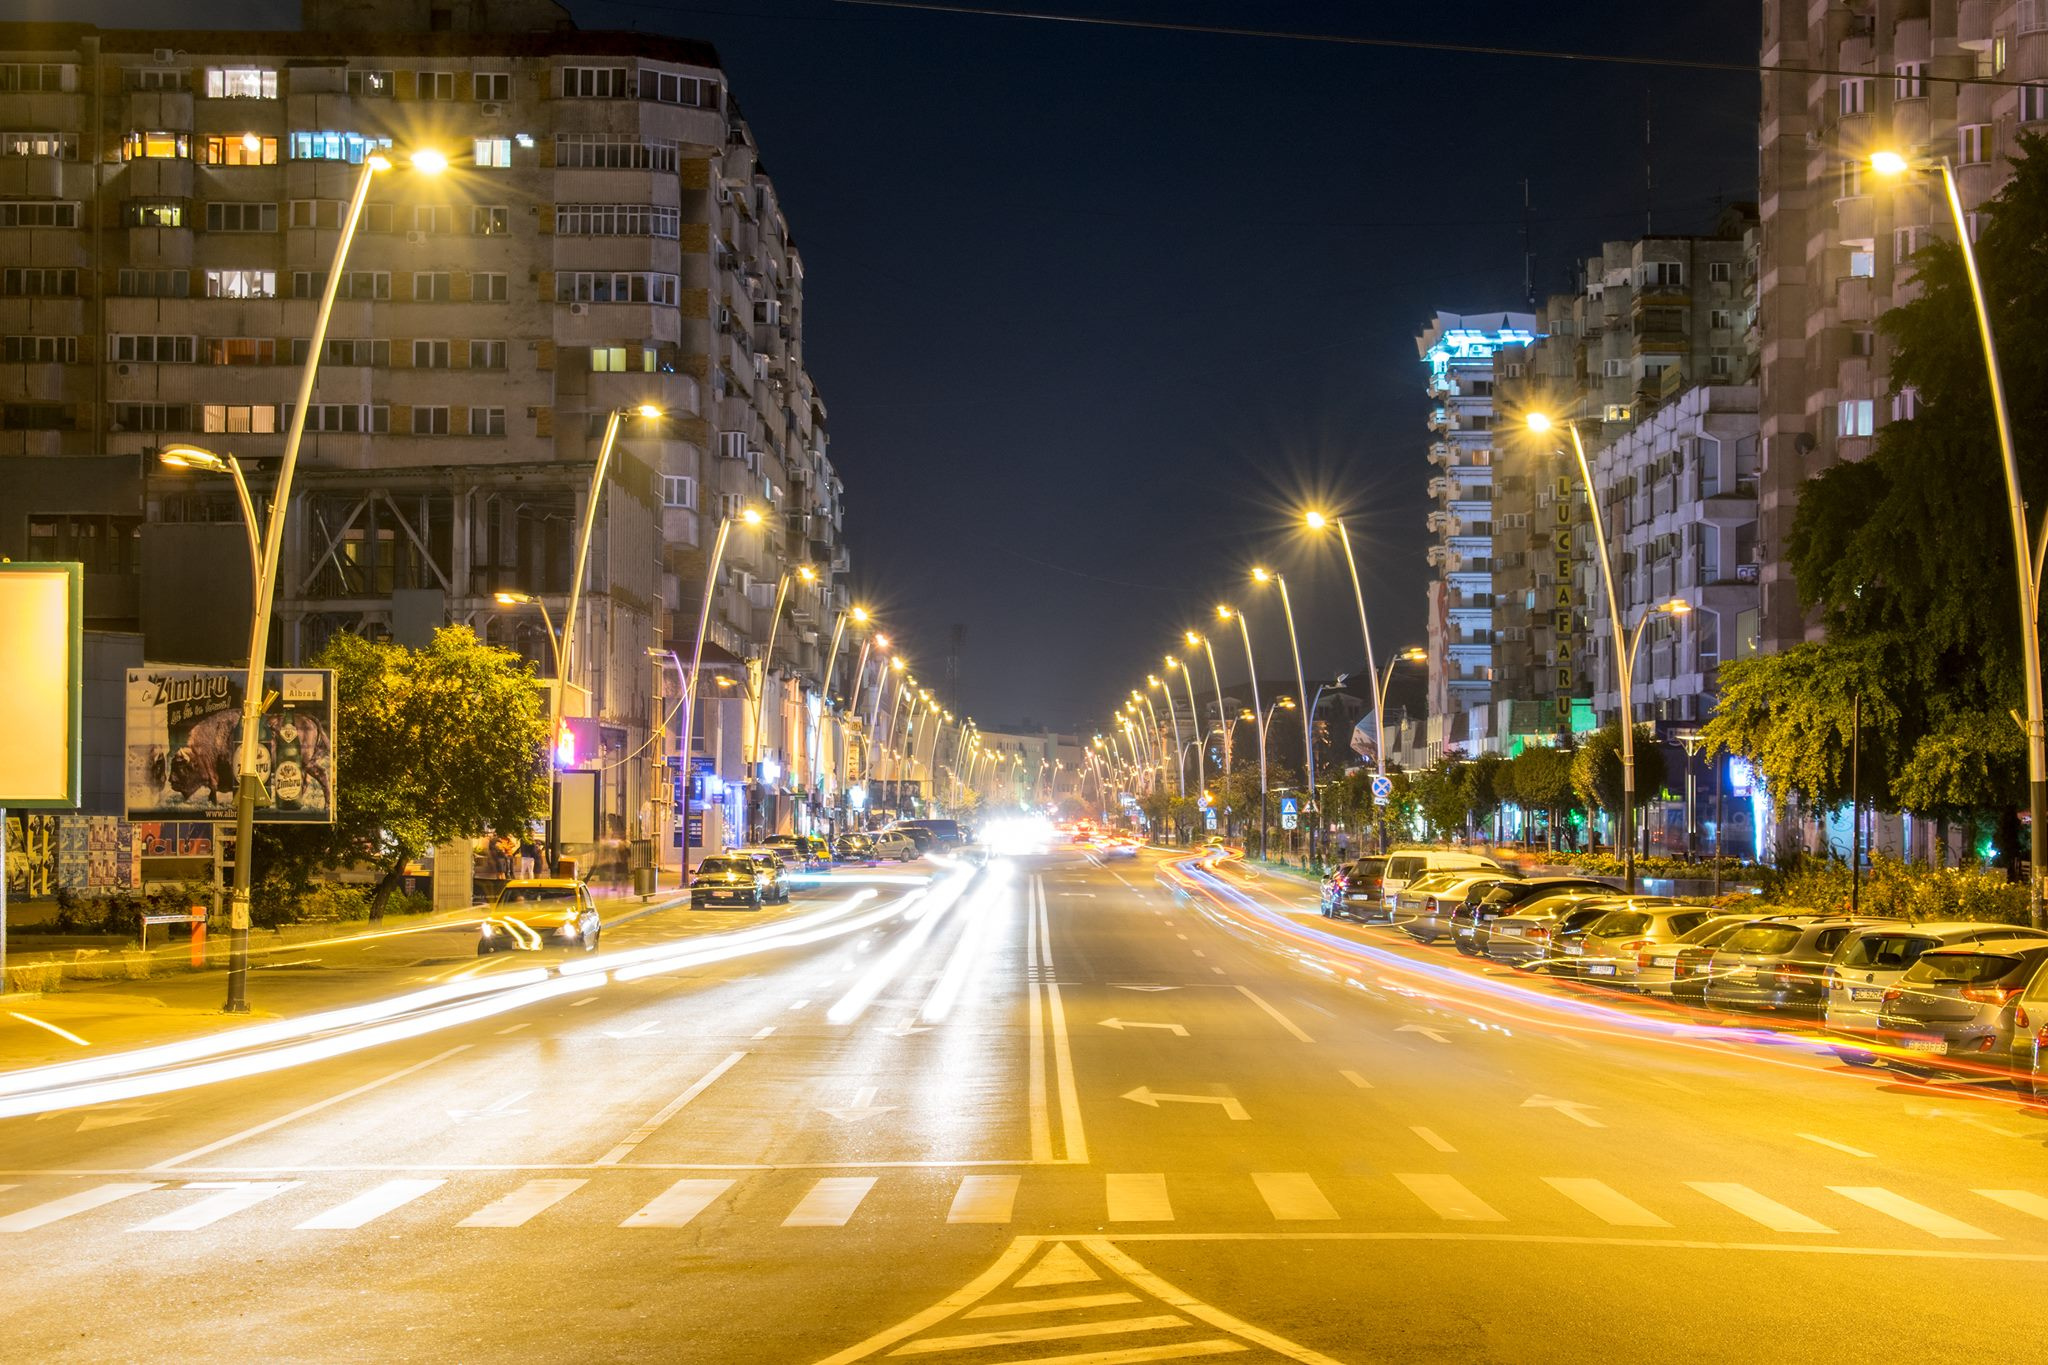 The city of Bacau receives 11 million EU funding to switch to LED lighting